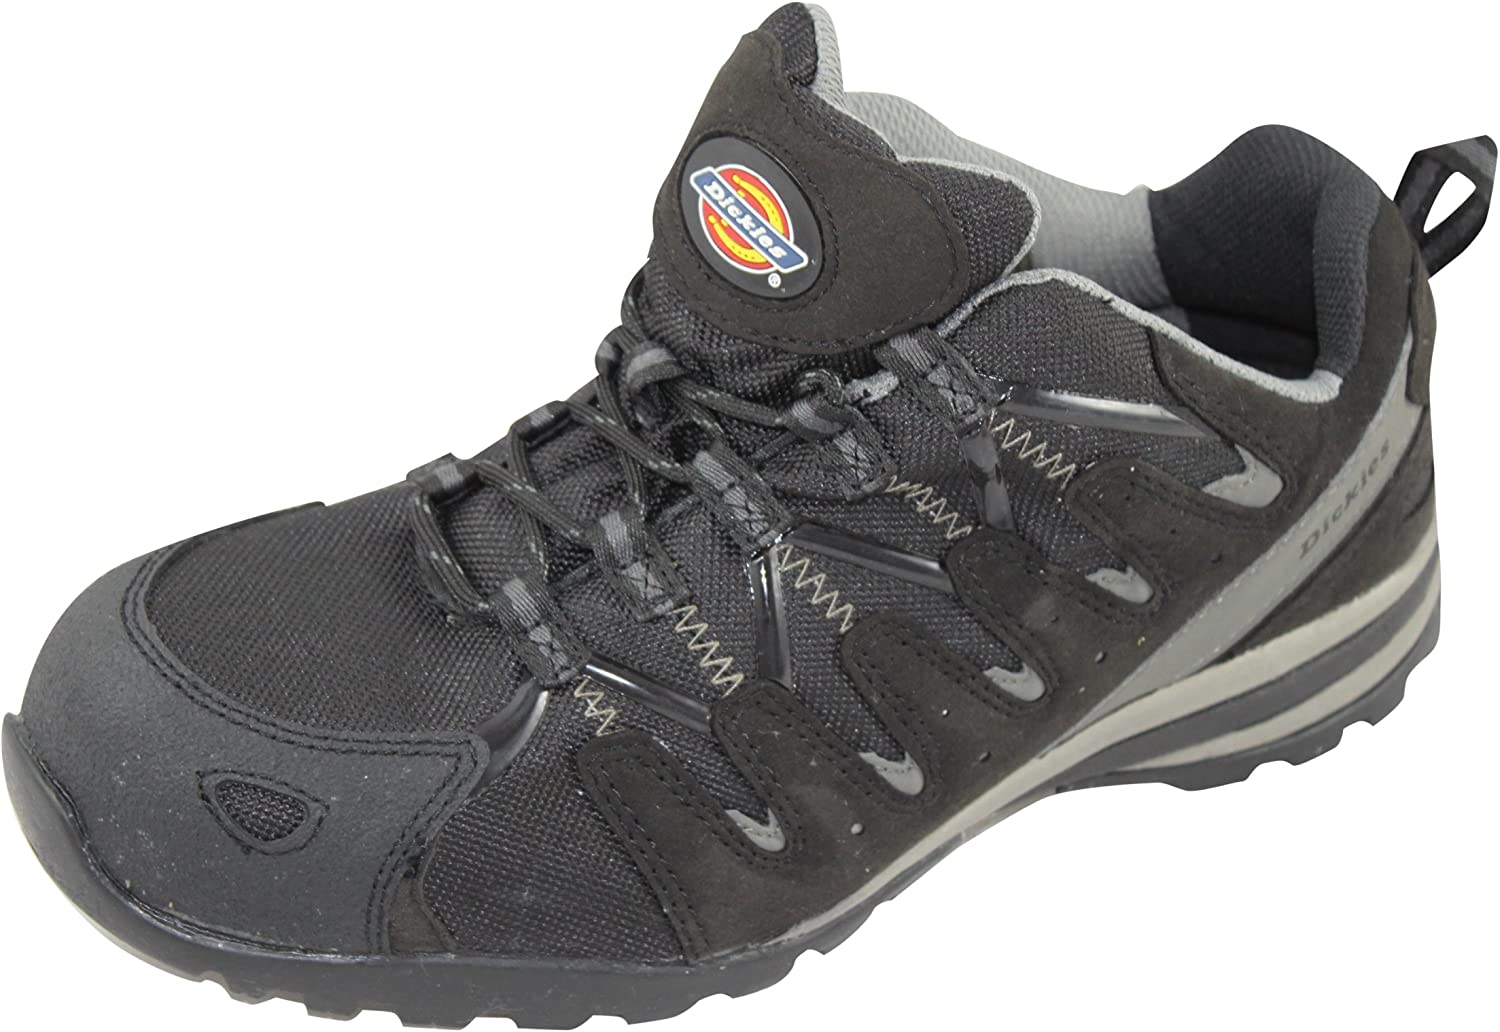 Dickies Tiber Safety Trainers Black Composite Midsole and Toecap